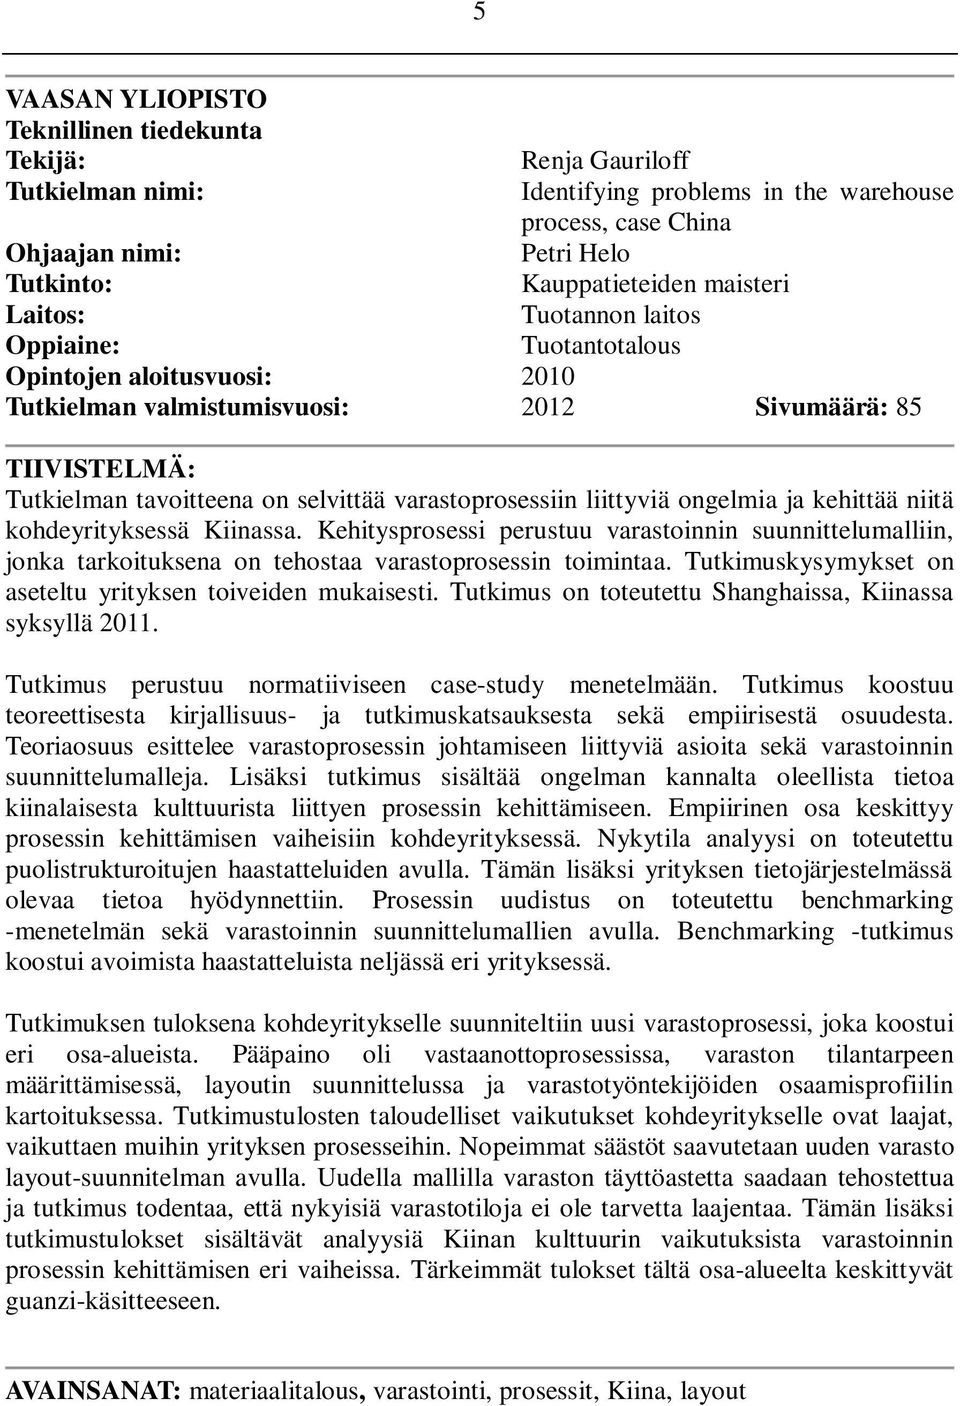 UNIVERSITY OF VAASA FACULTY OF TECHNOLOGY INDUSTRIAL MANAGEMENT - PDF